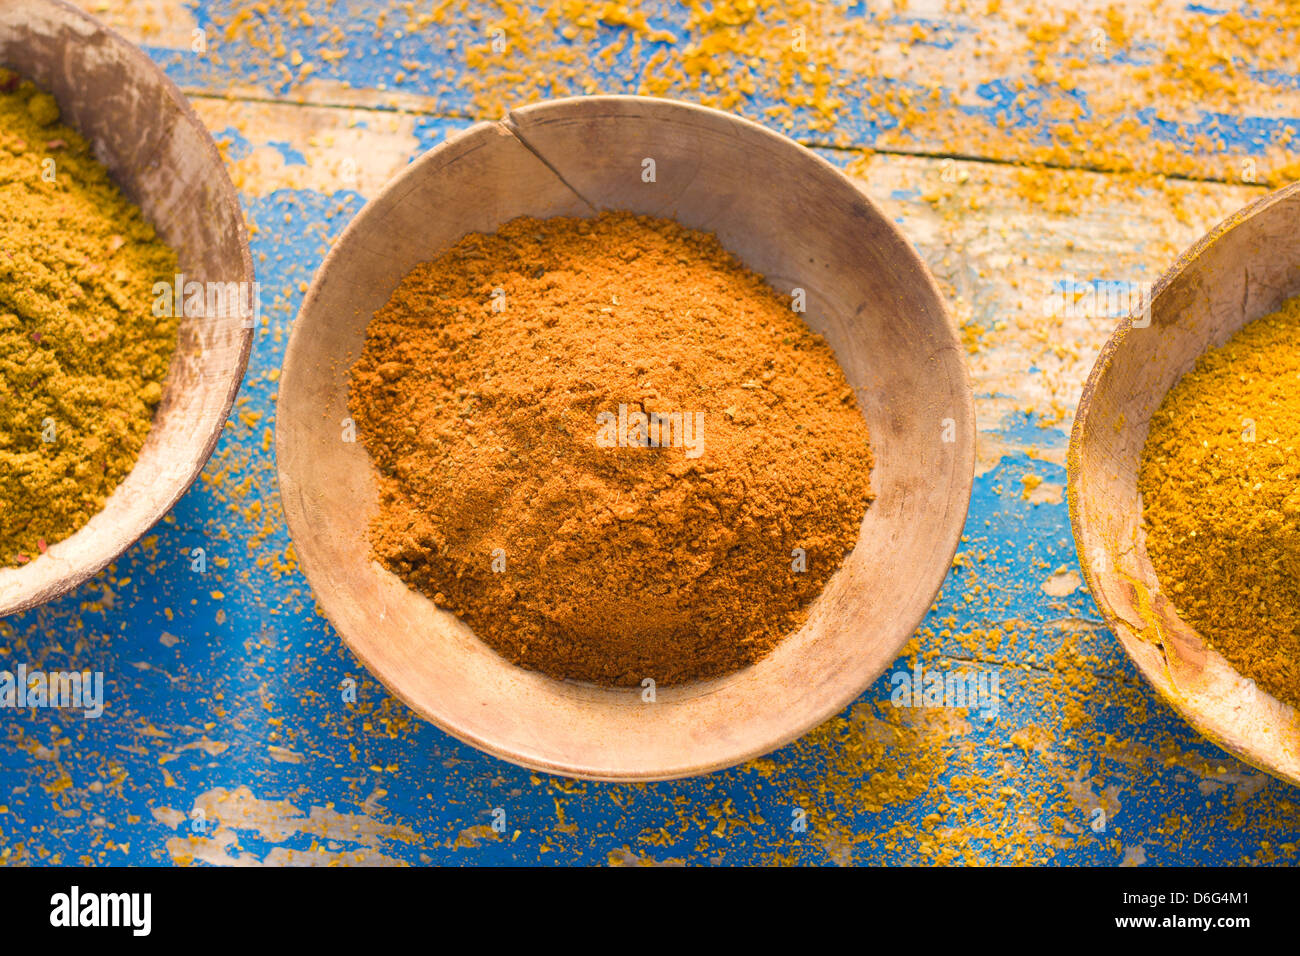 Curry powders, overhead view - Stock Image